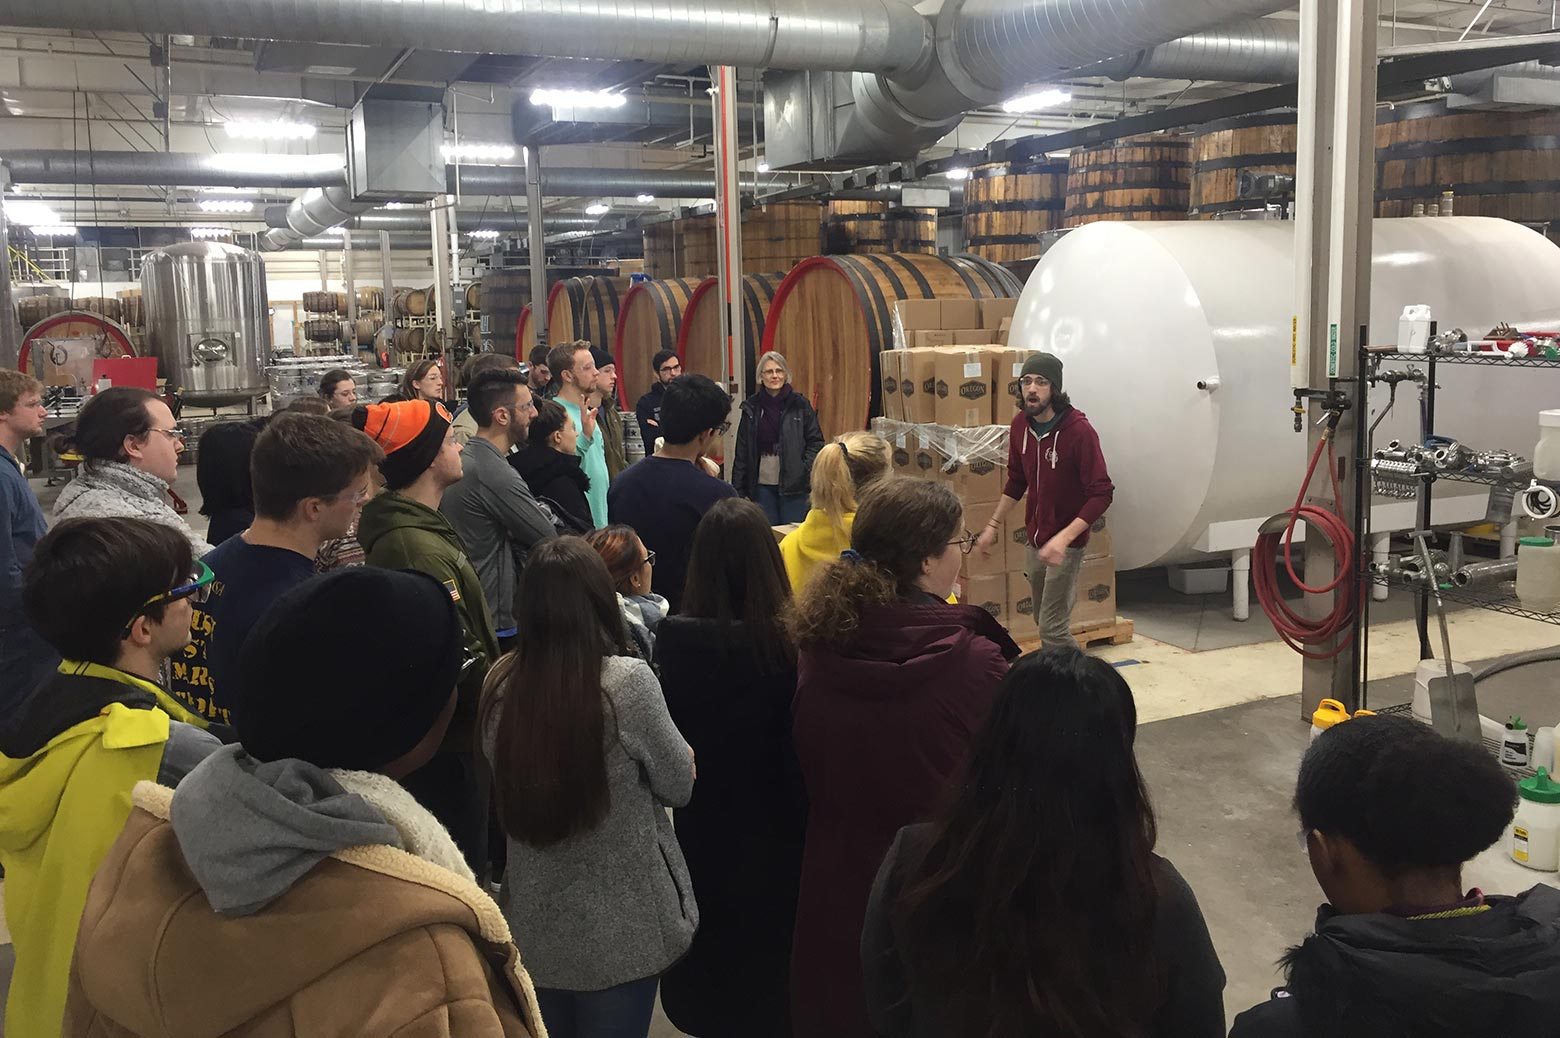 CEE 366 undergraduate visit the Jolly Pumpkin Brewery to learn about wastewater treatment.